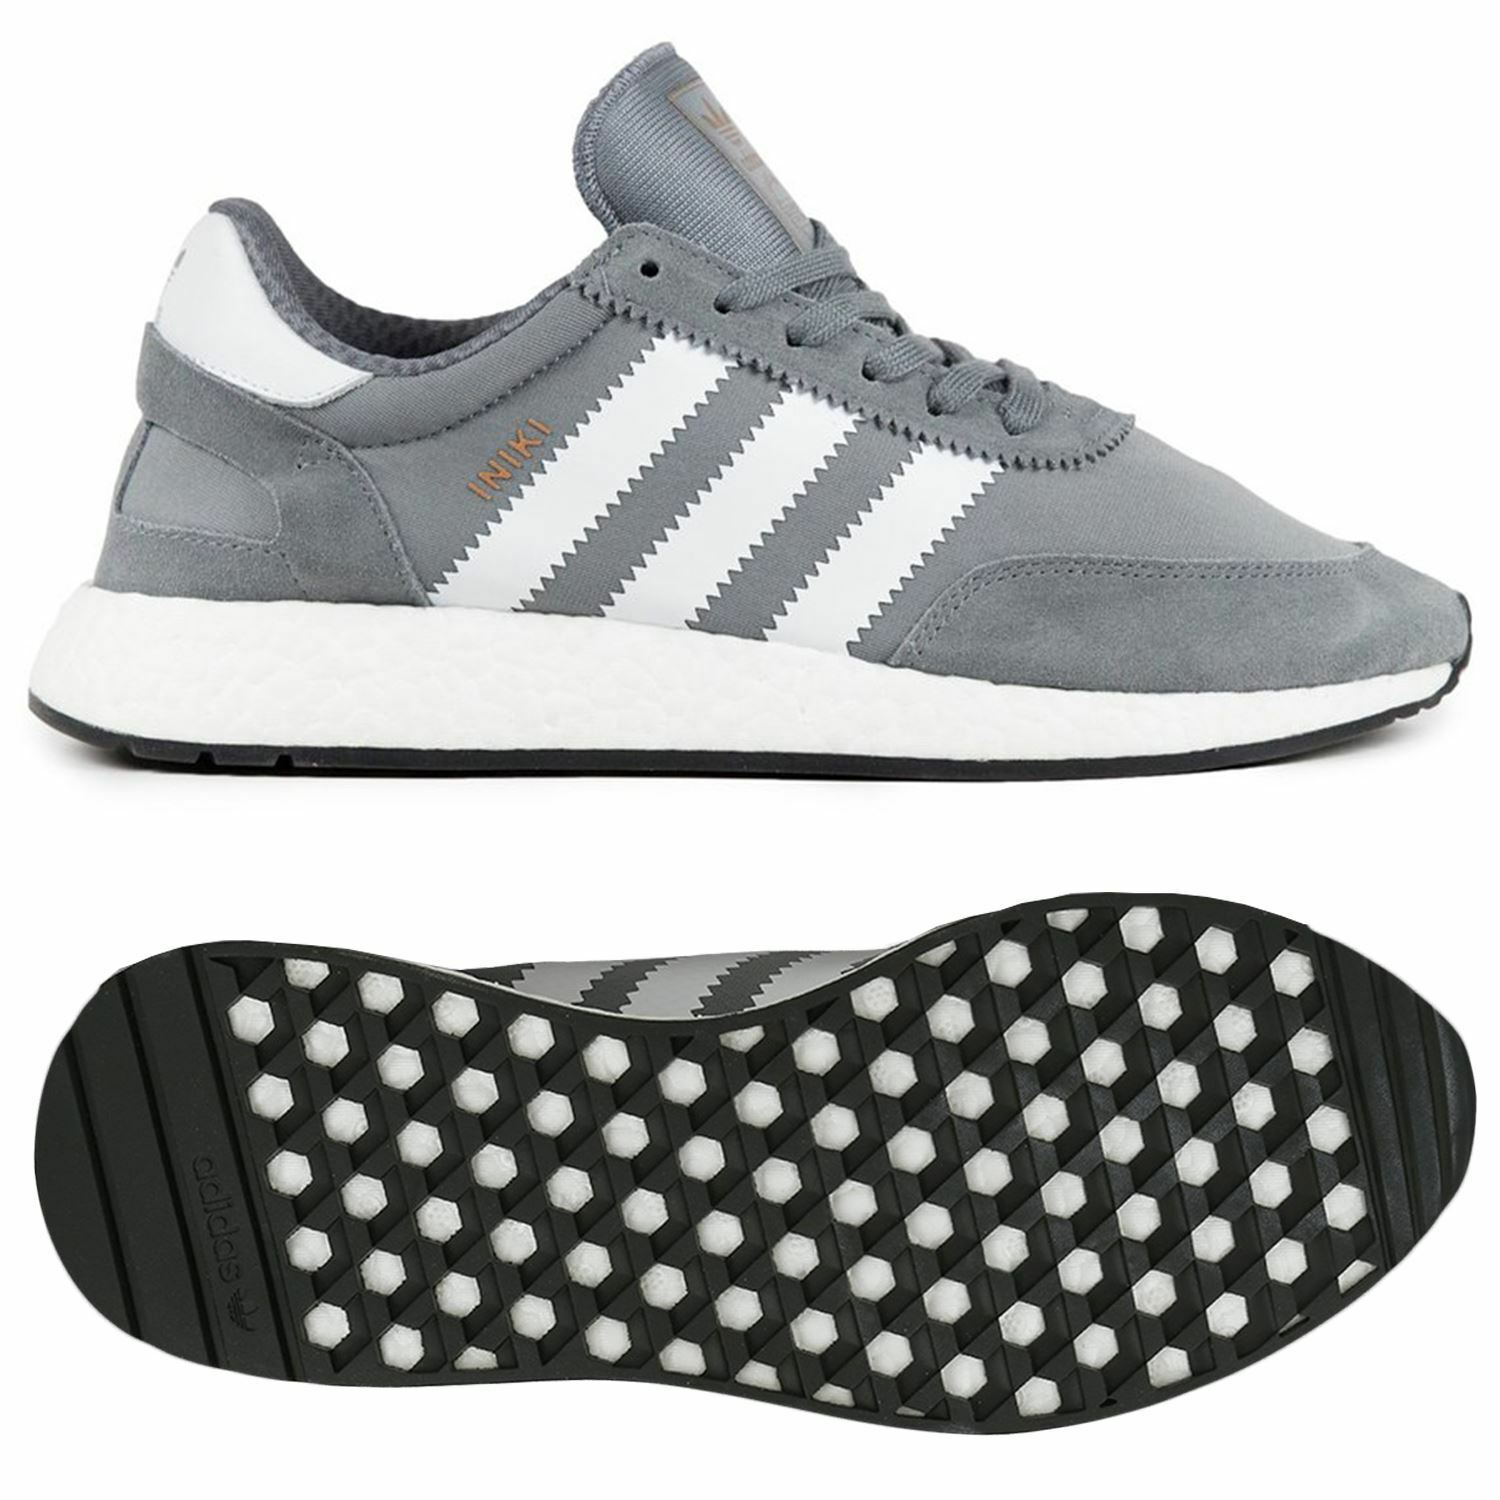 adidas ORIGINALS INIKI UNISEX TRAINERS MEN'S WOMEN'S SHOES RETRO B GRADE